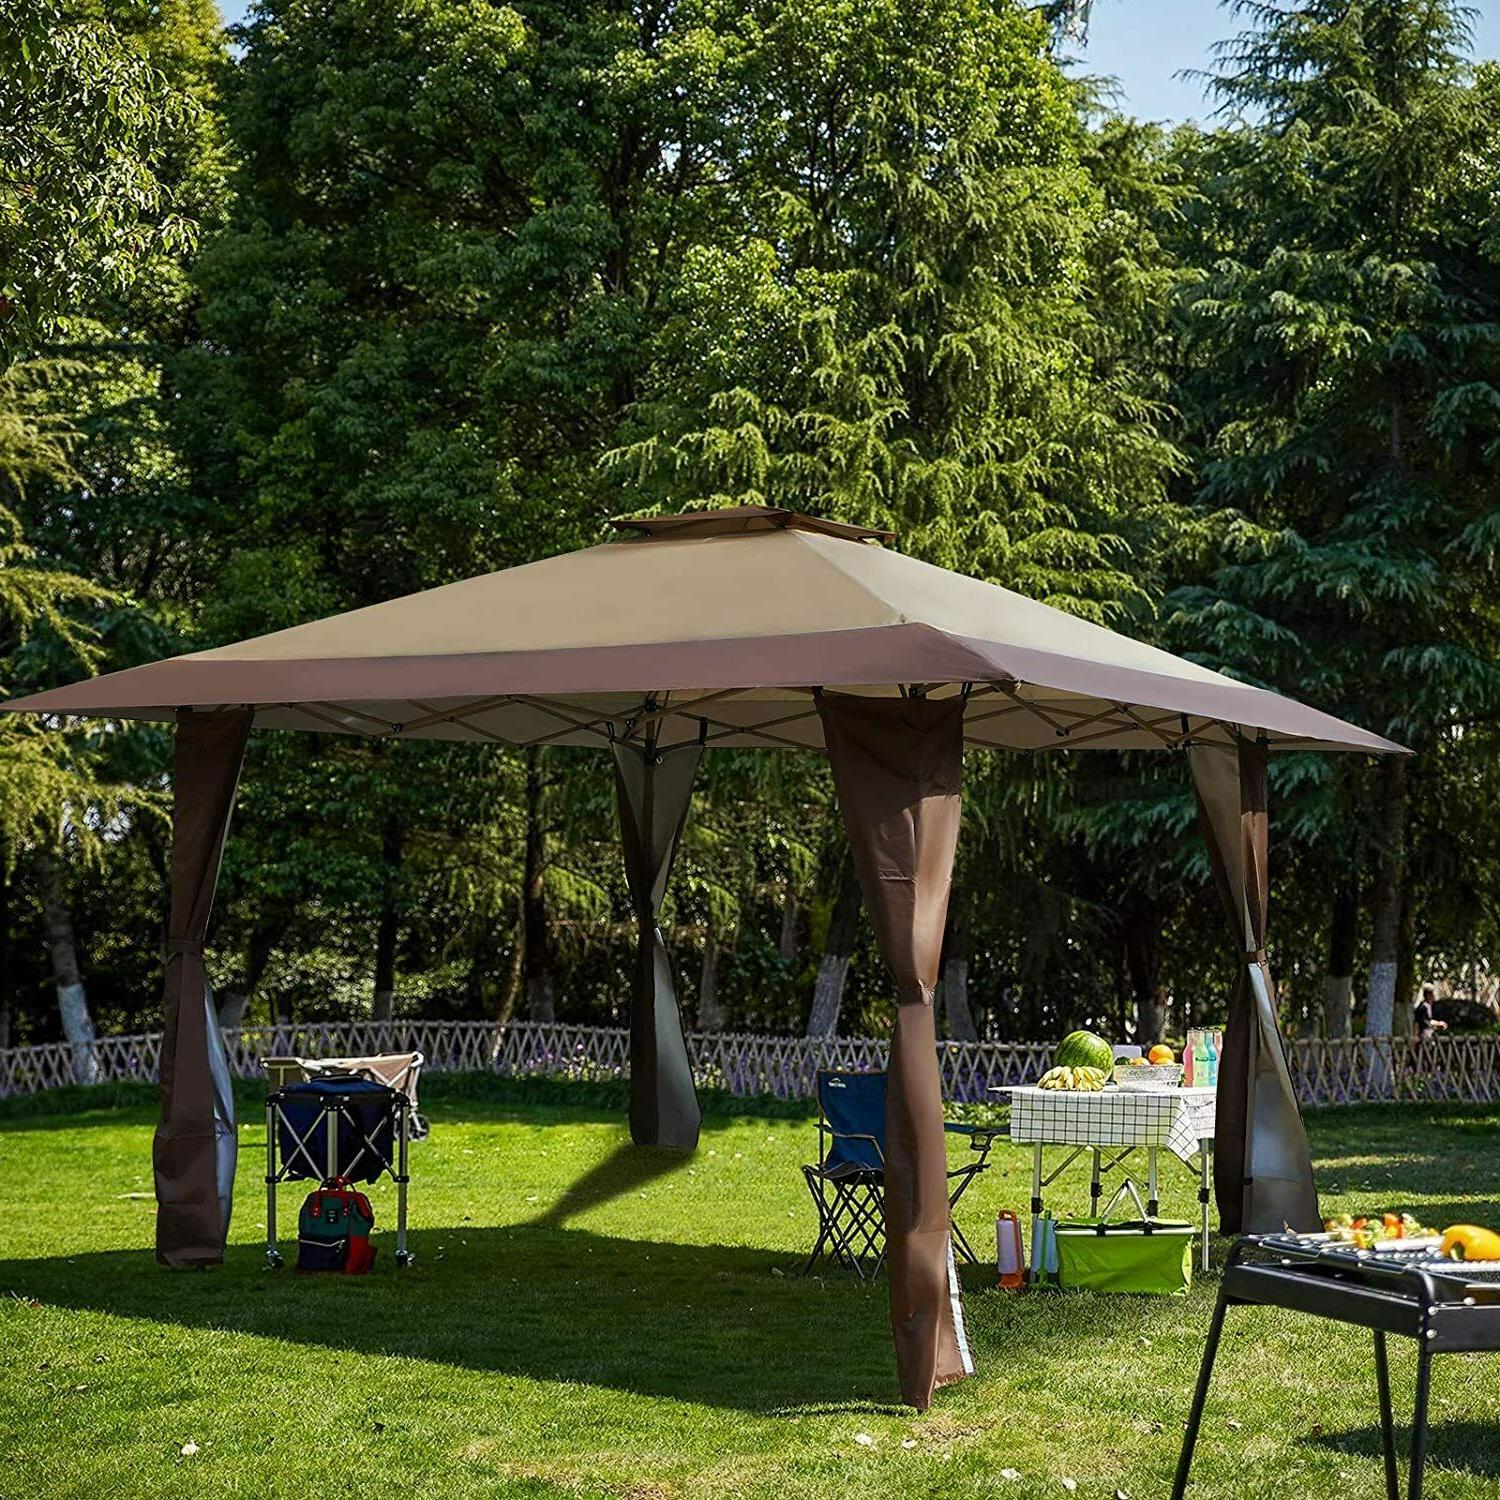 13' x13' UV Block Sun Shade Gazebo Patio/ Garden